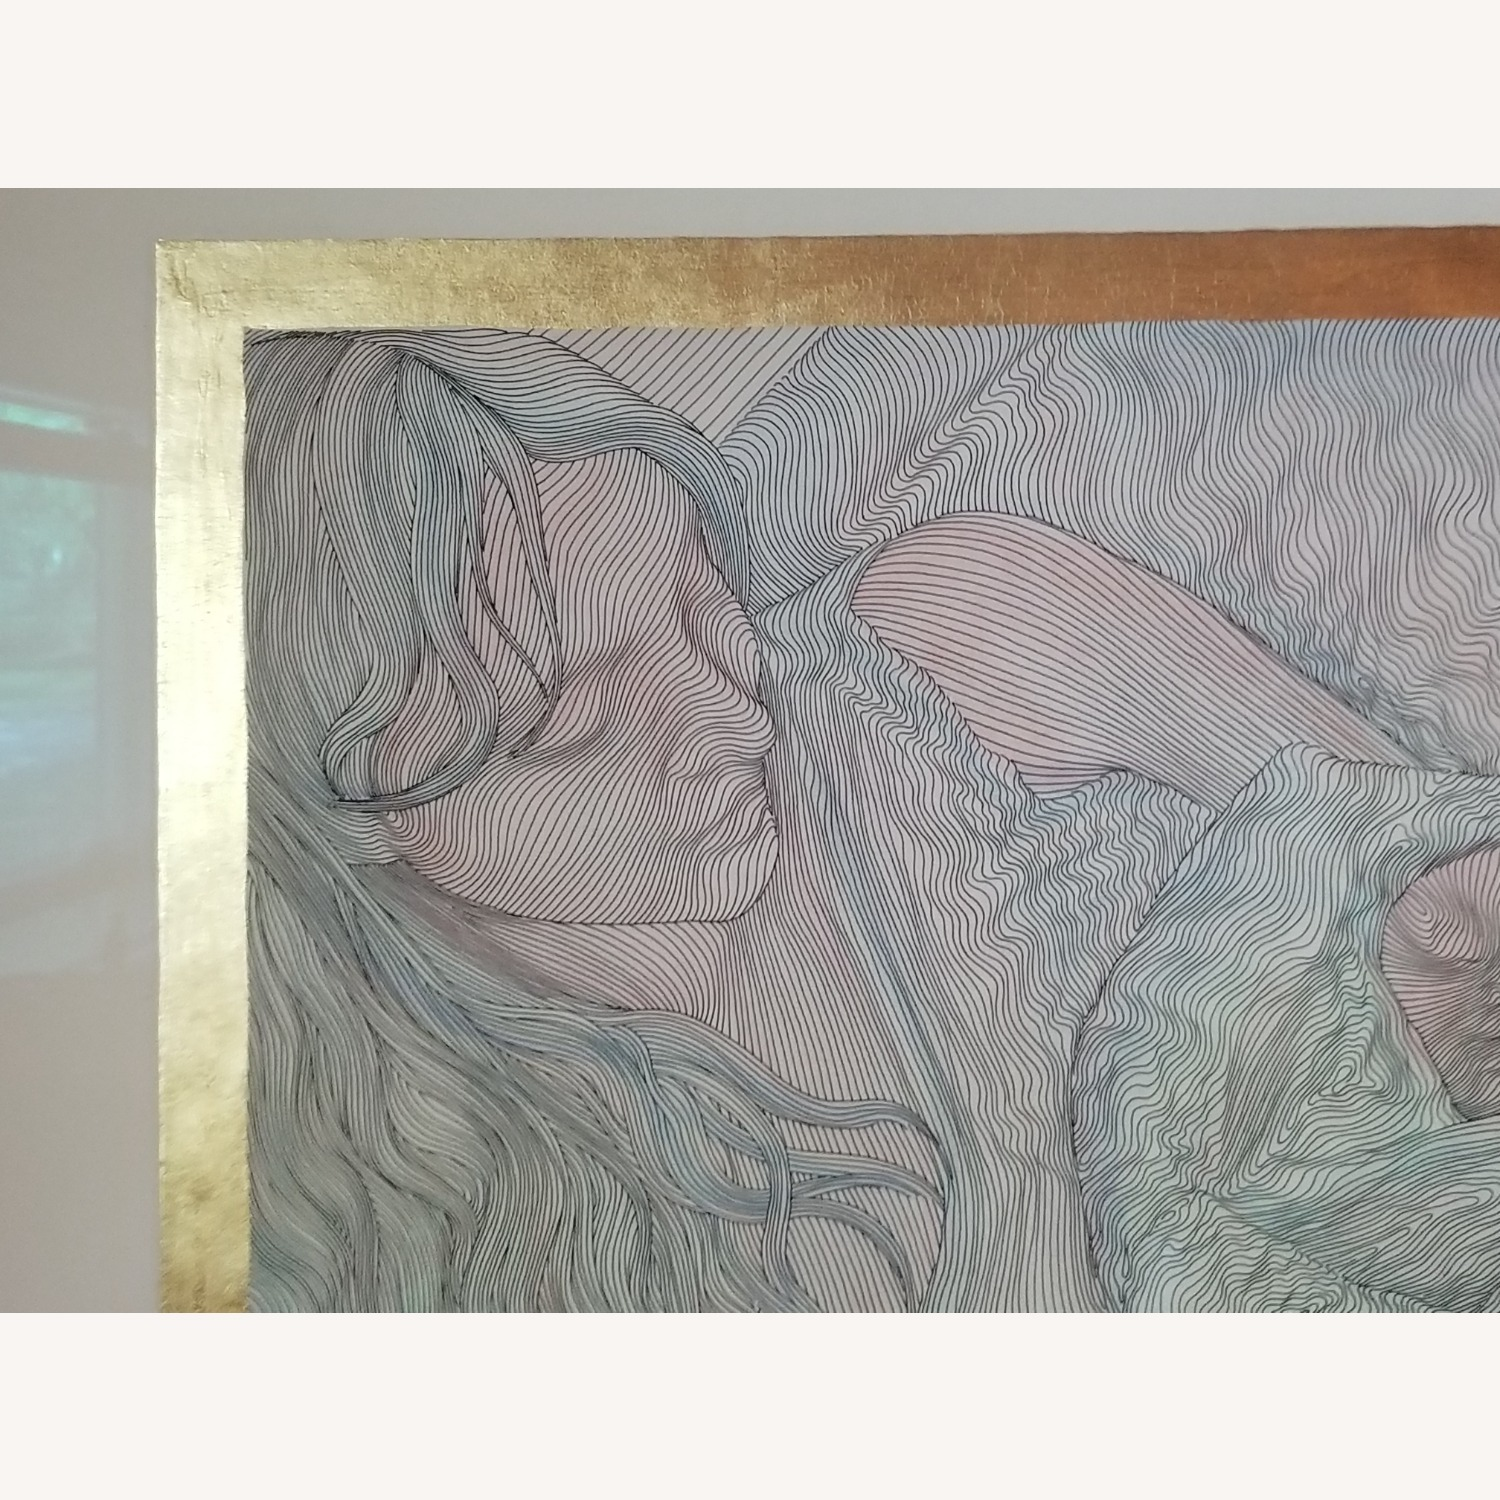 Guillaume Azoulay Original Line Drawing Lithograph - image-2